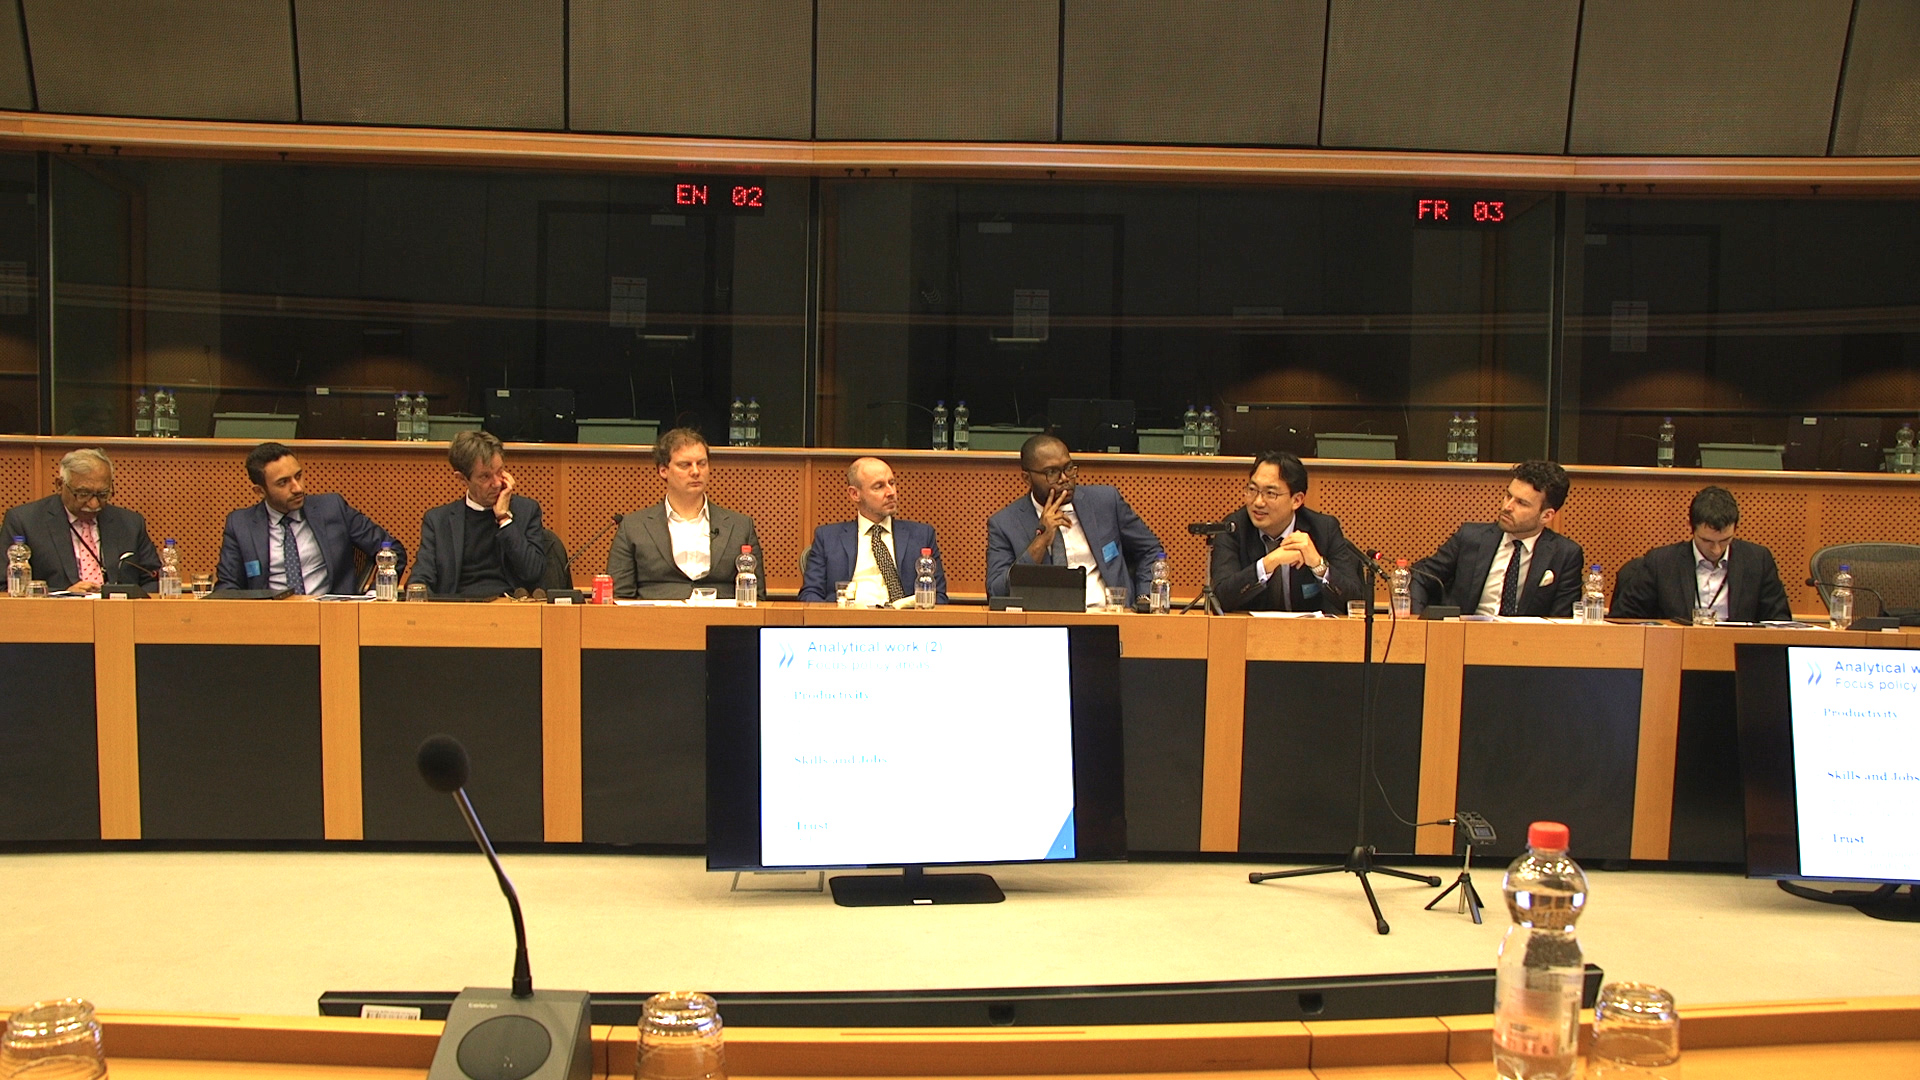 Future of Artificial Intelligence in the European Parliament